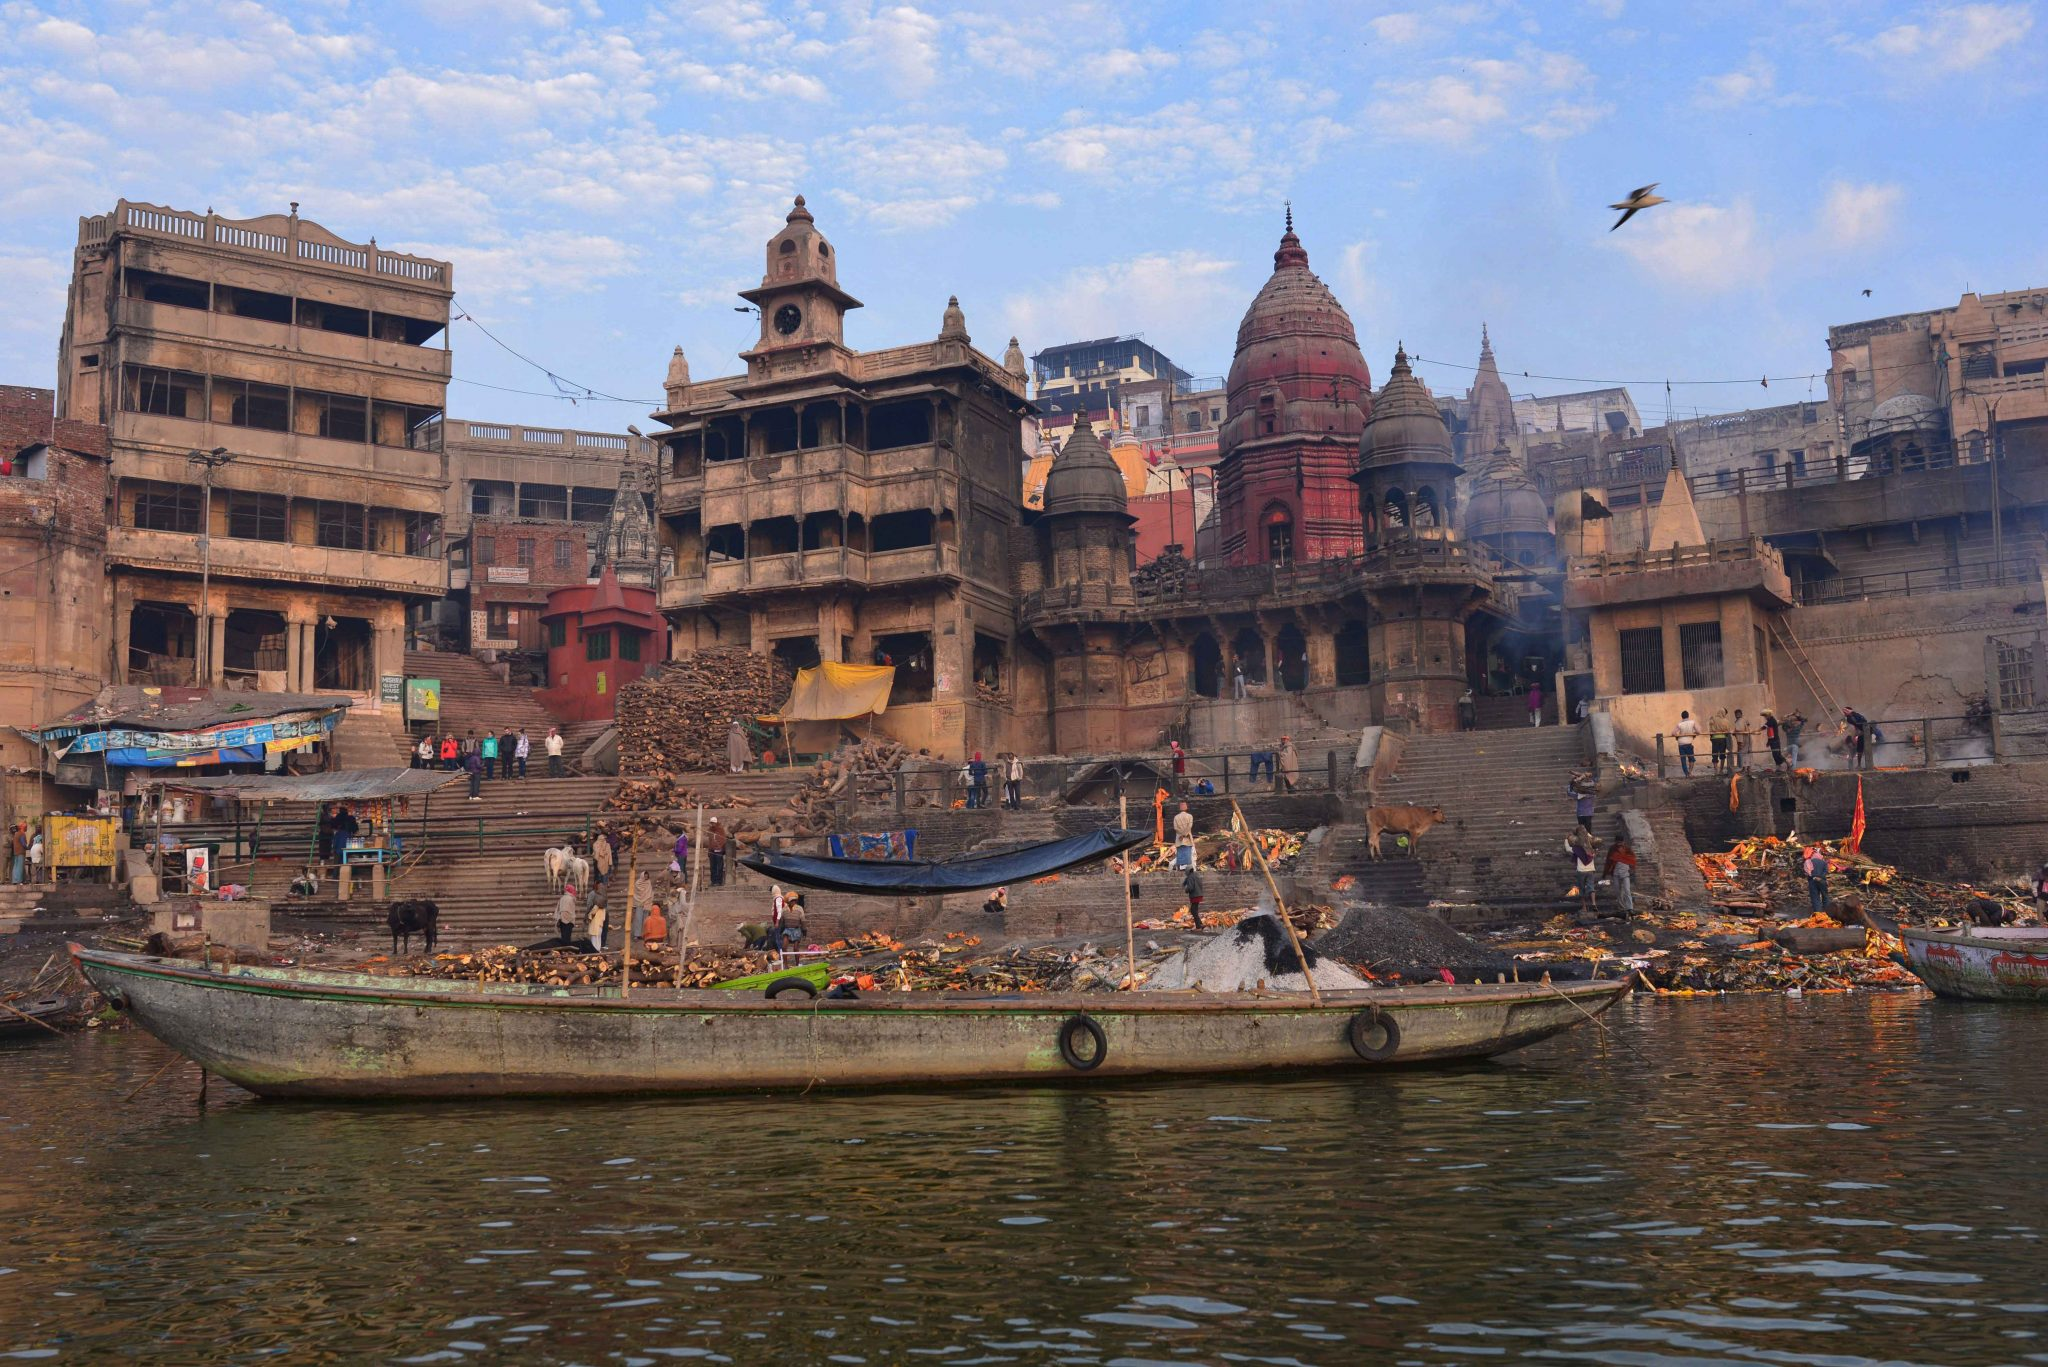 Manikarnika, the burning ghat